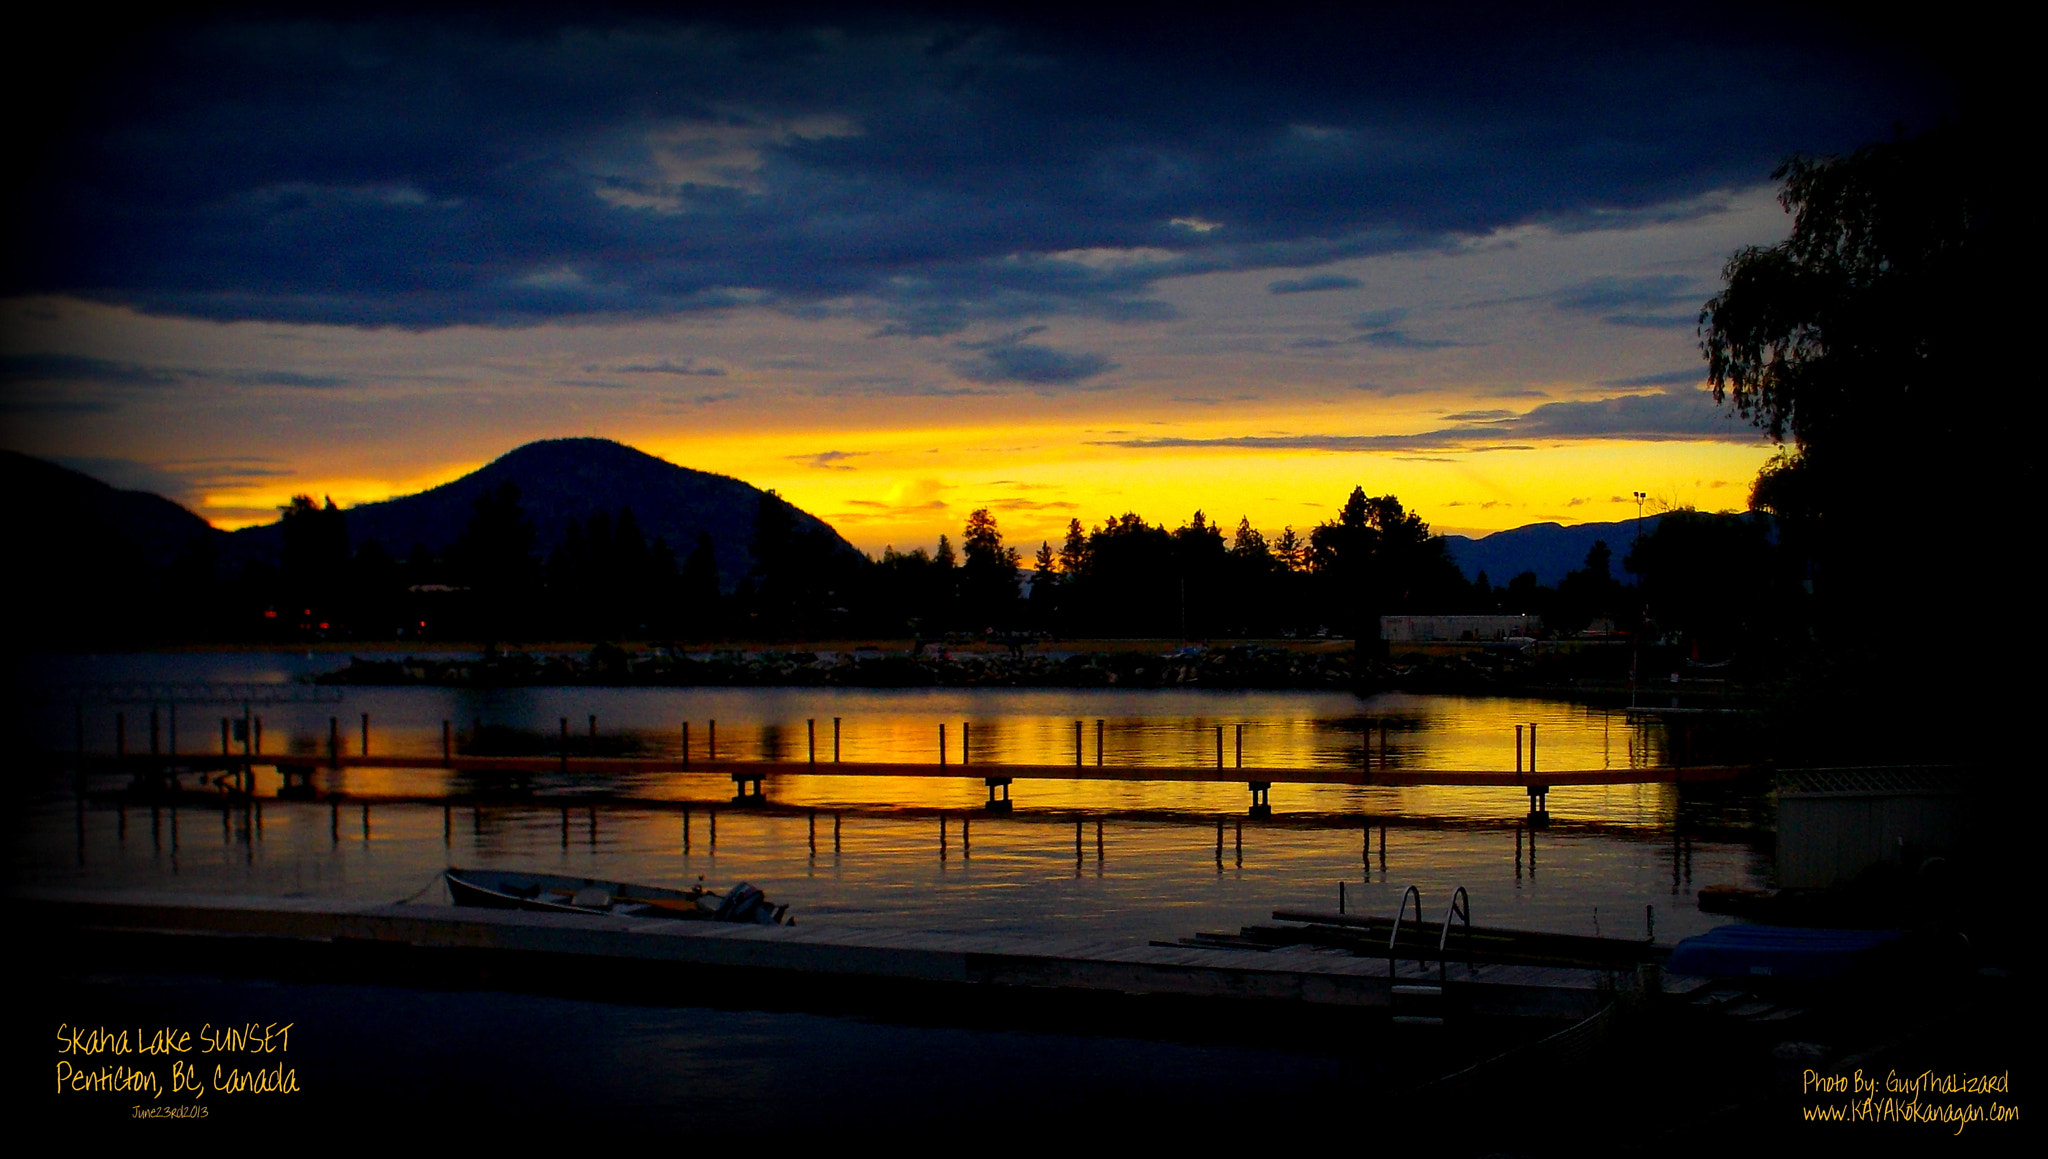 Photograph Skaha Lake SUNSET by Guy Hoffman on 500px